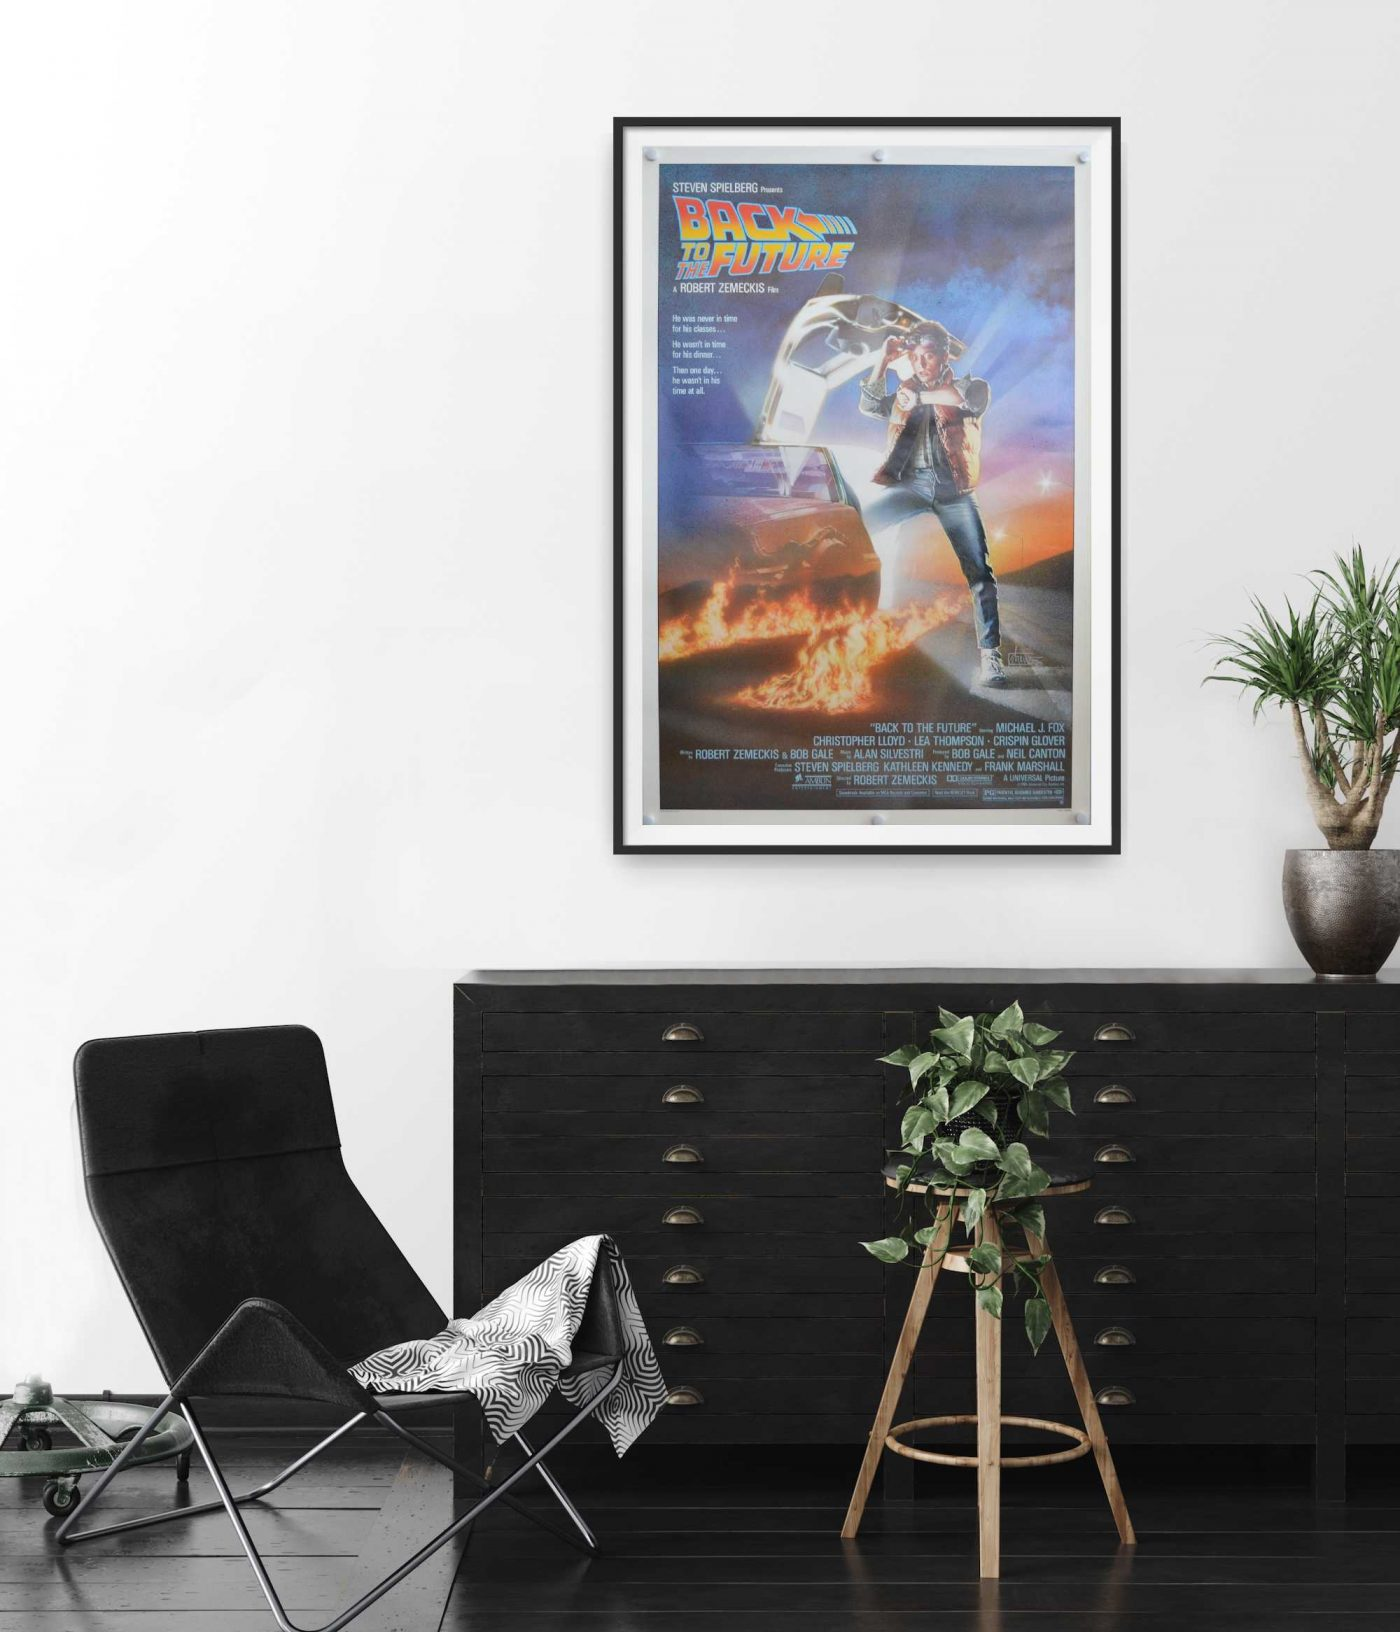 This is an original US cinema Poster for the Film 'Back to the Future'. The poster shows Marty McFly (played by Michael J Fox) standing beside the time travelling DeLorean car.